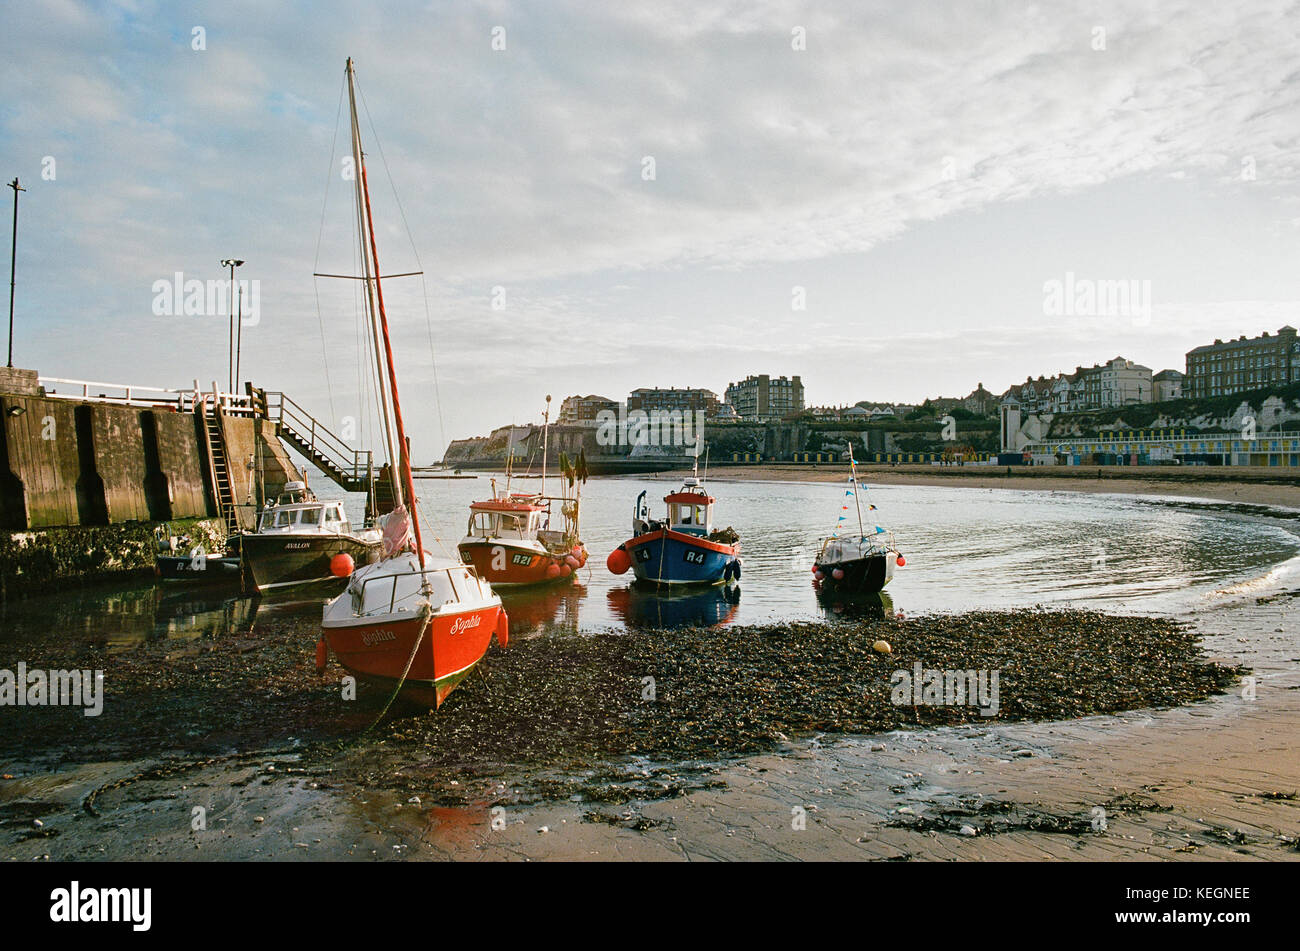 Viking Bay, Broadstairs, Thanet, on the East Kent coast in the early evening - Stock Image